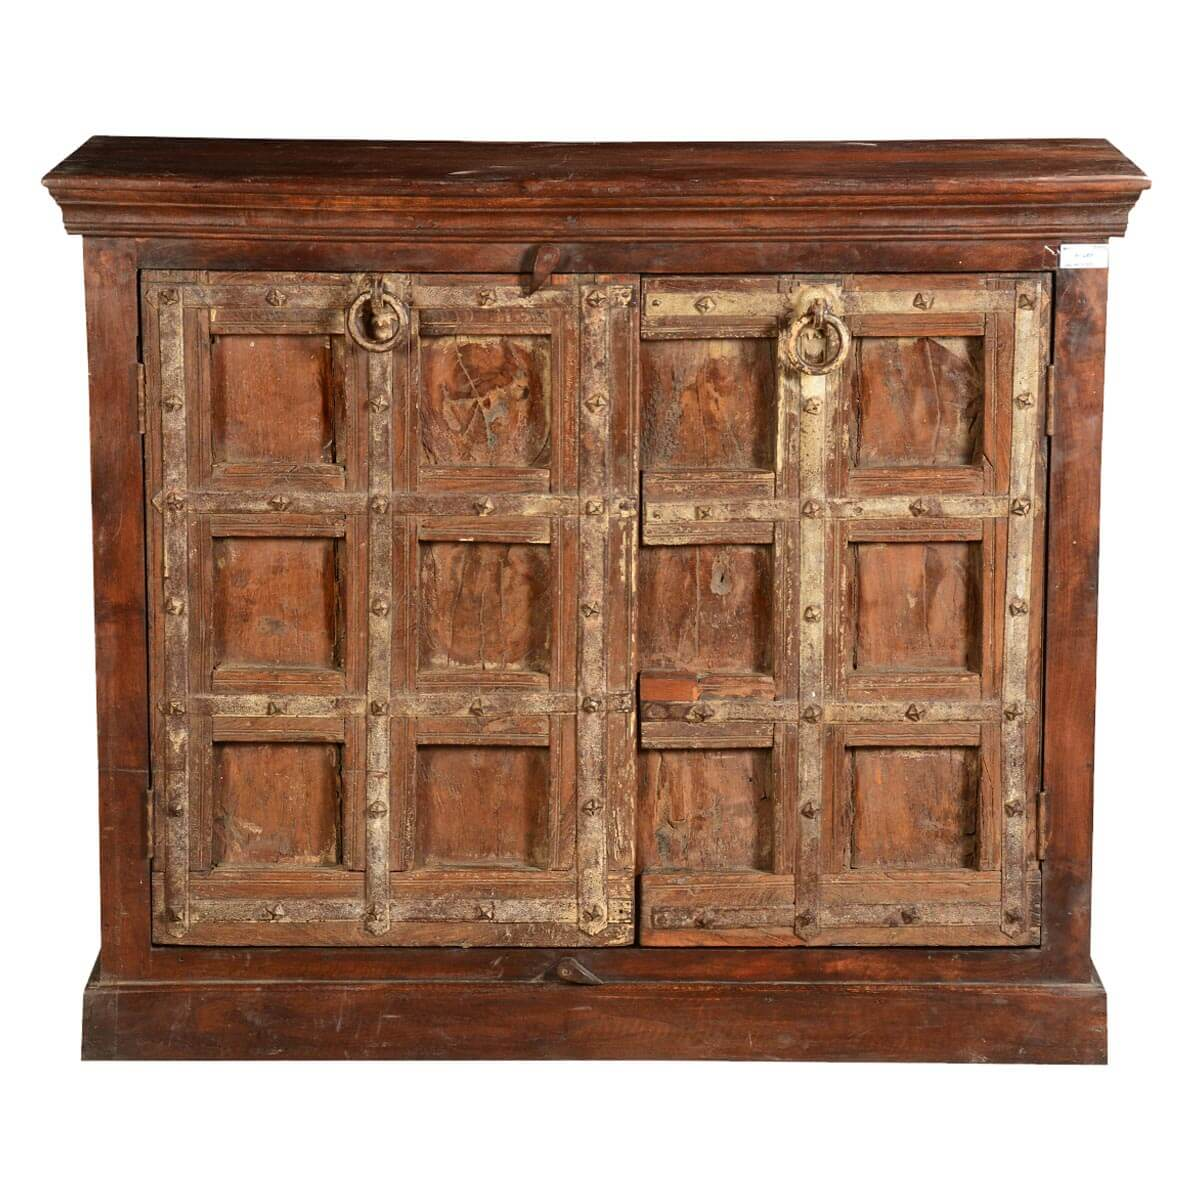 Simply Gothic Reclaimed Wood 46 Buffet Freestanding Cabinet